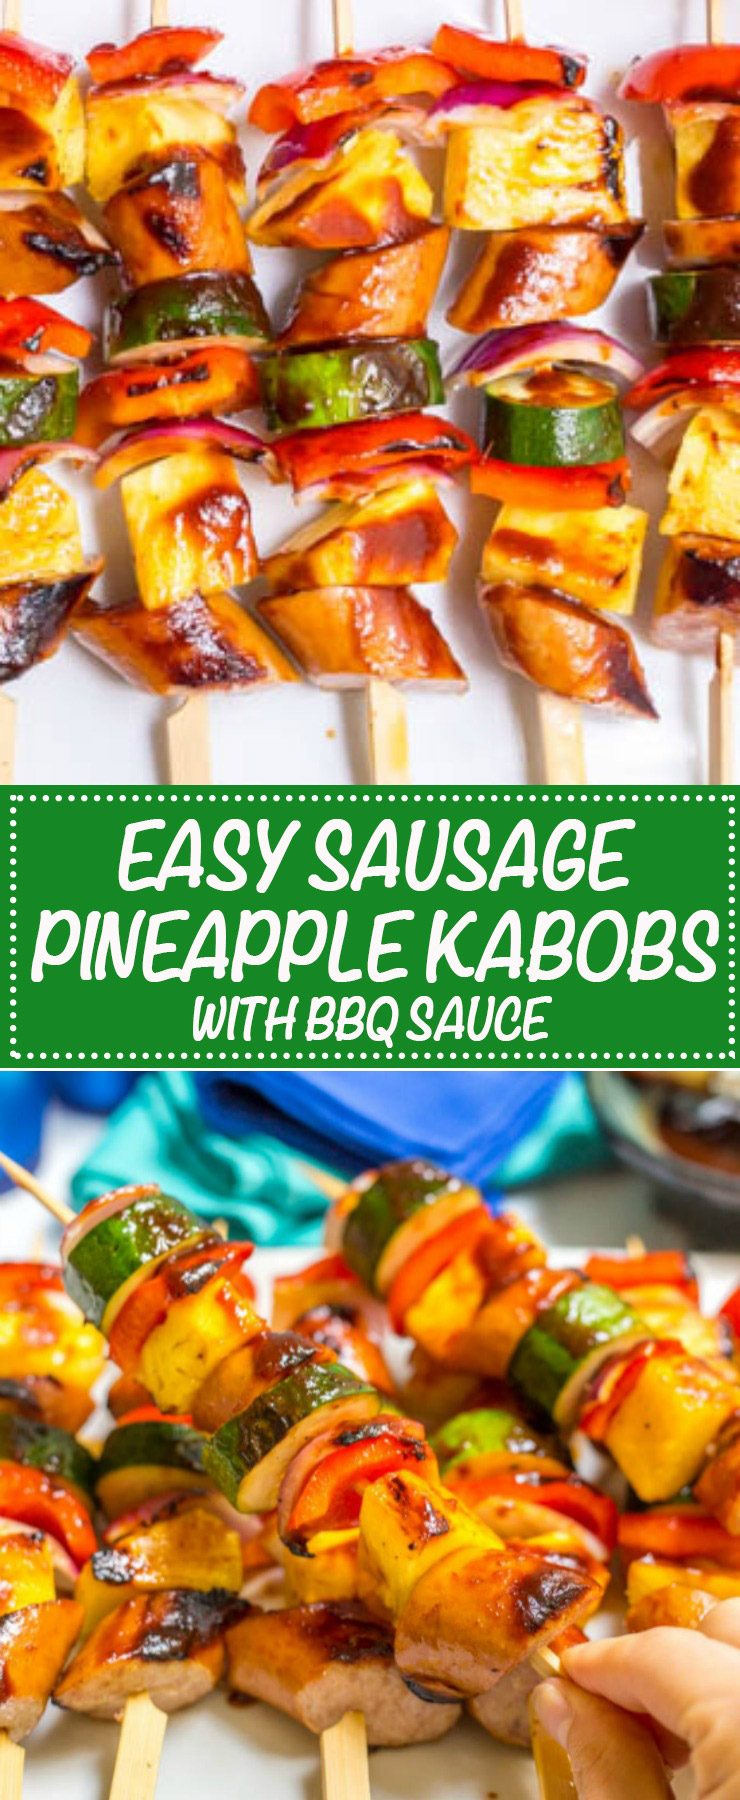 Sausage pineapple kabobs with BBQ sauce are a quick, no-marinade kabob recipe that's perfect as an easy, flavorful summer appetizer or dinner! | www.famillyfoodonthetable.com